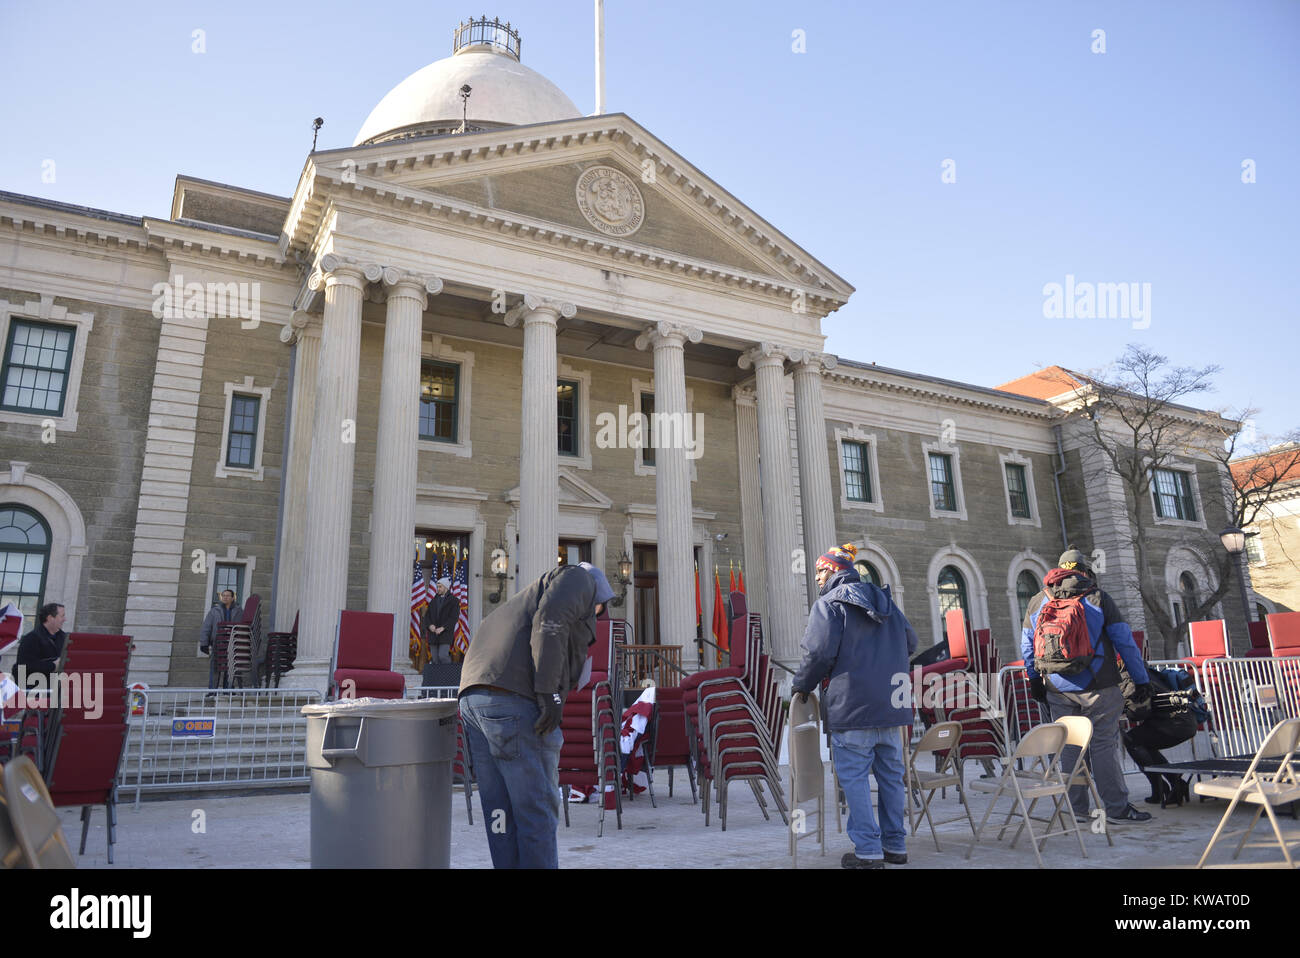 Mineola, New York, USA. 1st Jan, 2018. Workers remove chairs, flags, bunting from location the swearing-in ceremony - Stock Image